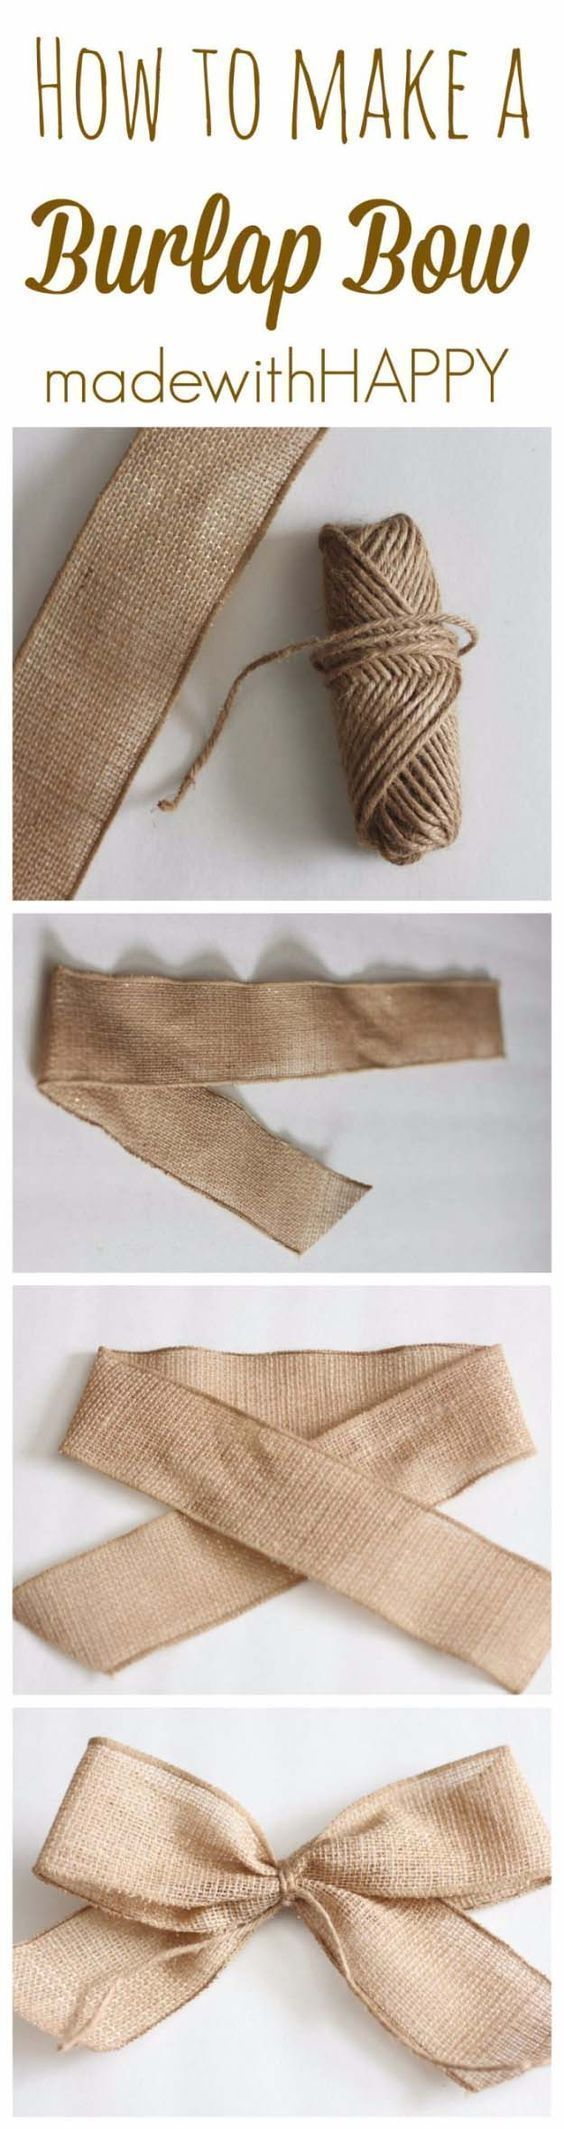 Awesome DIY Christmas Home Decorations and Homemade Holiday Decor Ideas - Quick and Easy Decorating ideas, cool ornaments, home decor crafts and fun Christmas stuff | Crafts and DIY projects by DIY Joy | How to Make a Fast Burlap Bow for Holiday Decorations | http://diyjoy.com/diy-christmas-decor-holiday-decorations #HomemadeHomeDecor #homemadechristmasdecorations #diychristmasdecorations #craftsanddiyprojects